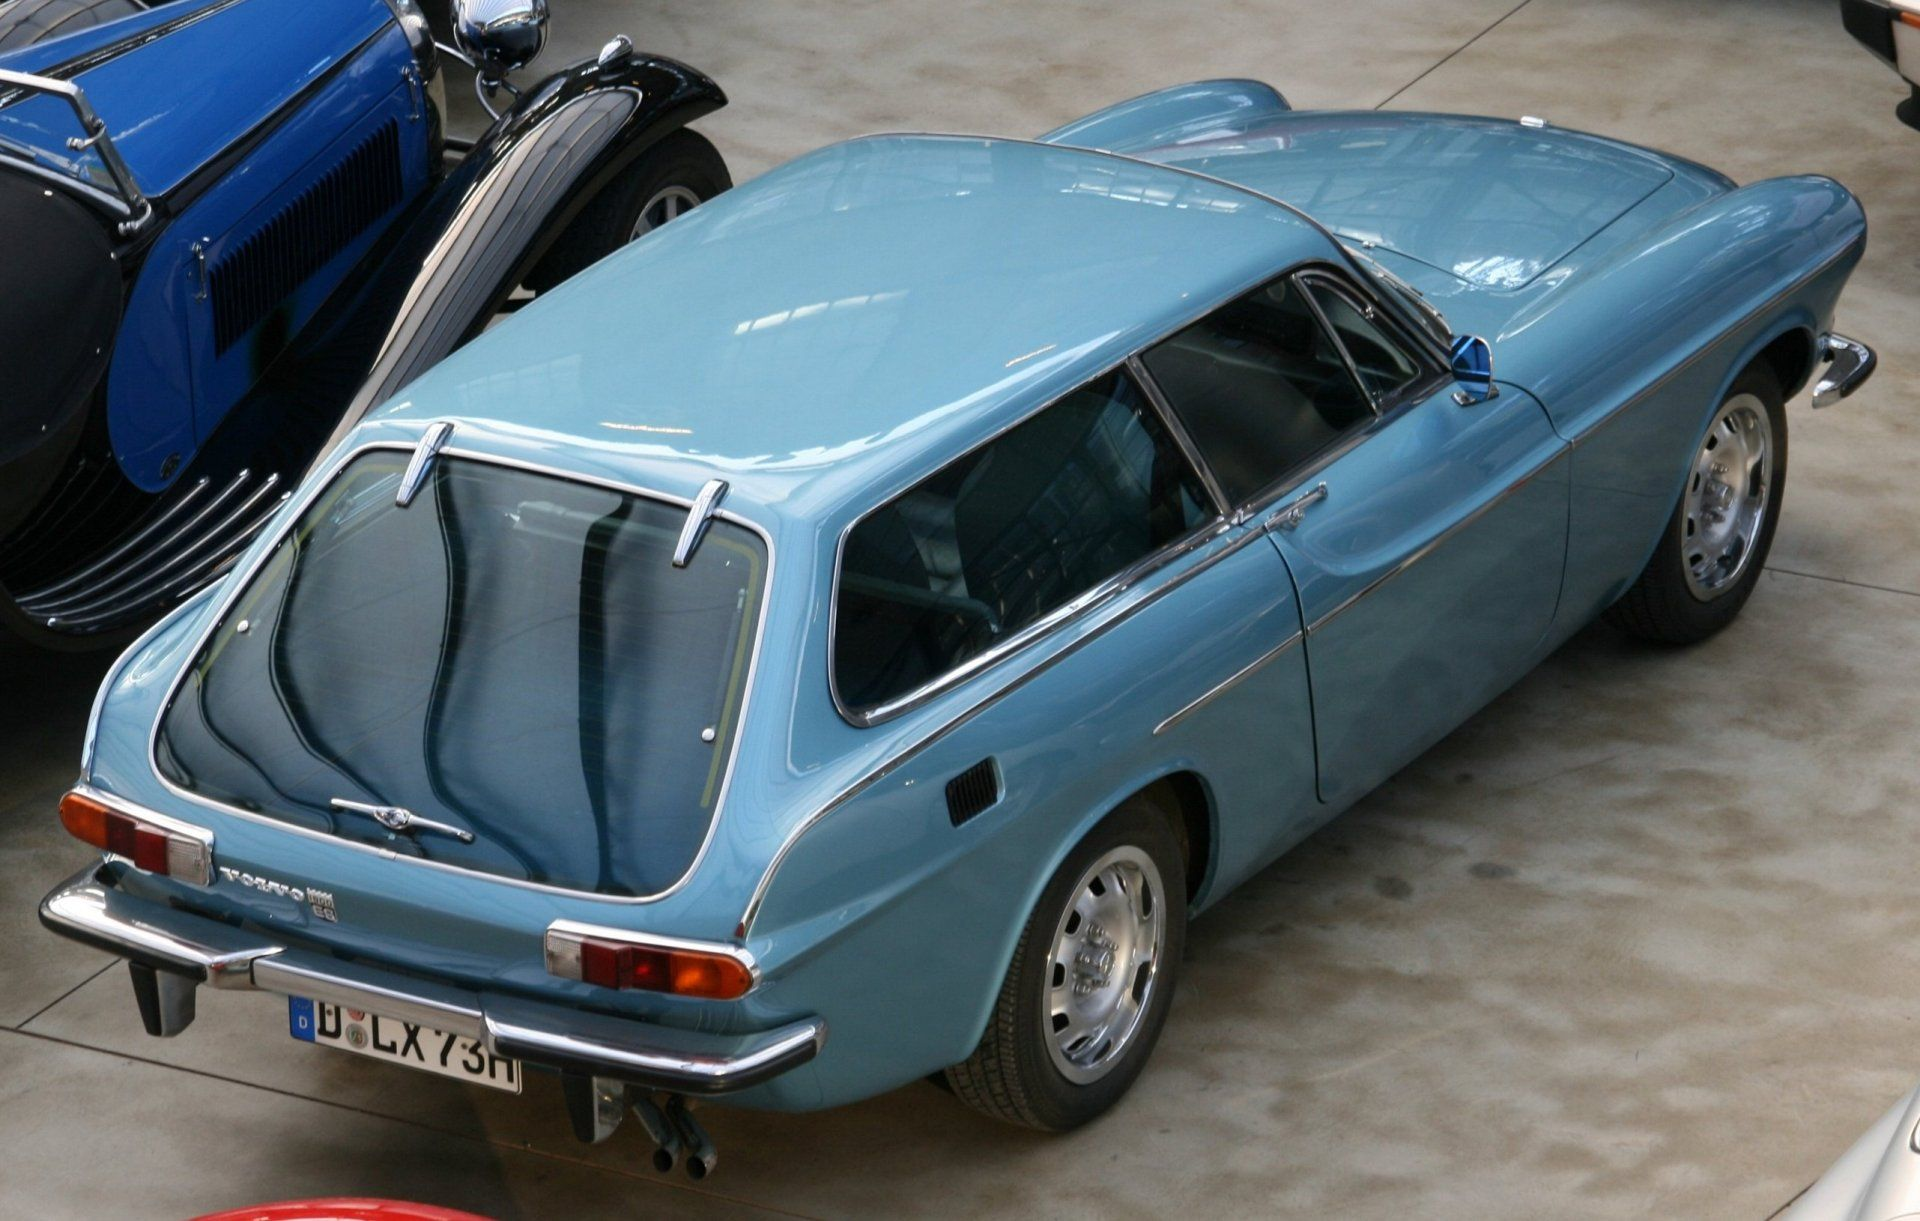 volvo p1800 es snow white s coffin only cars and cars. Black Bedroom Furniture Sets. Home Design Ideas